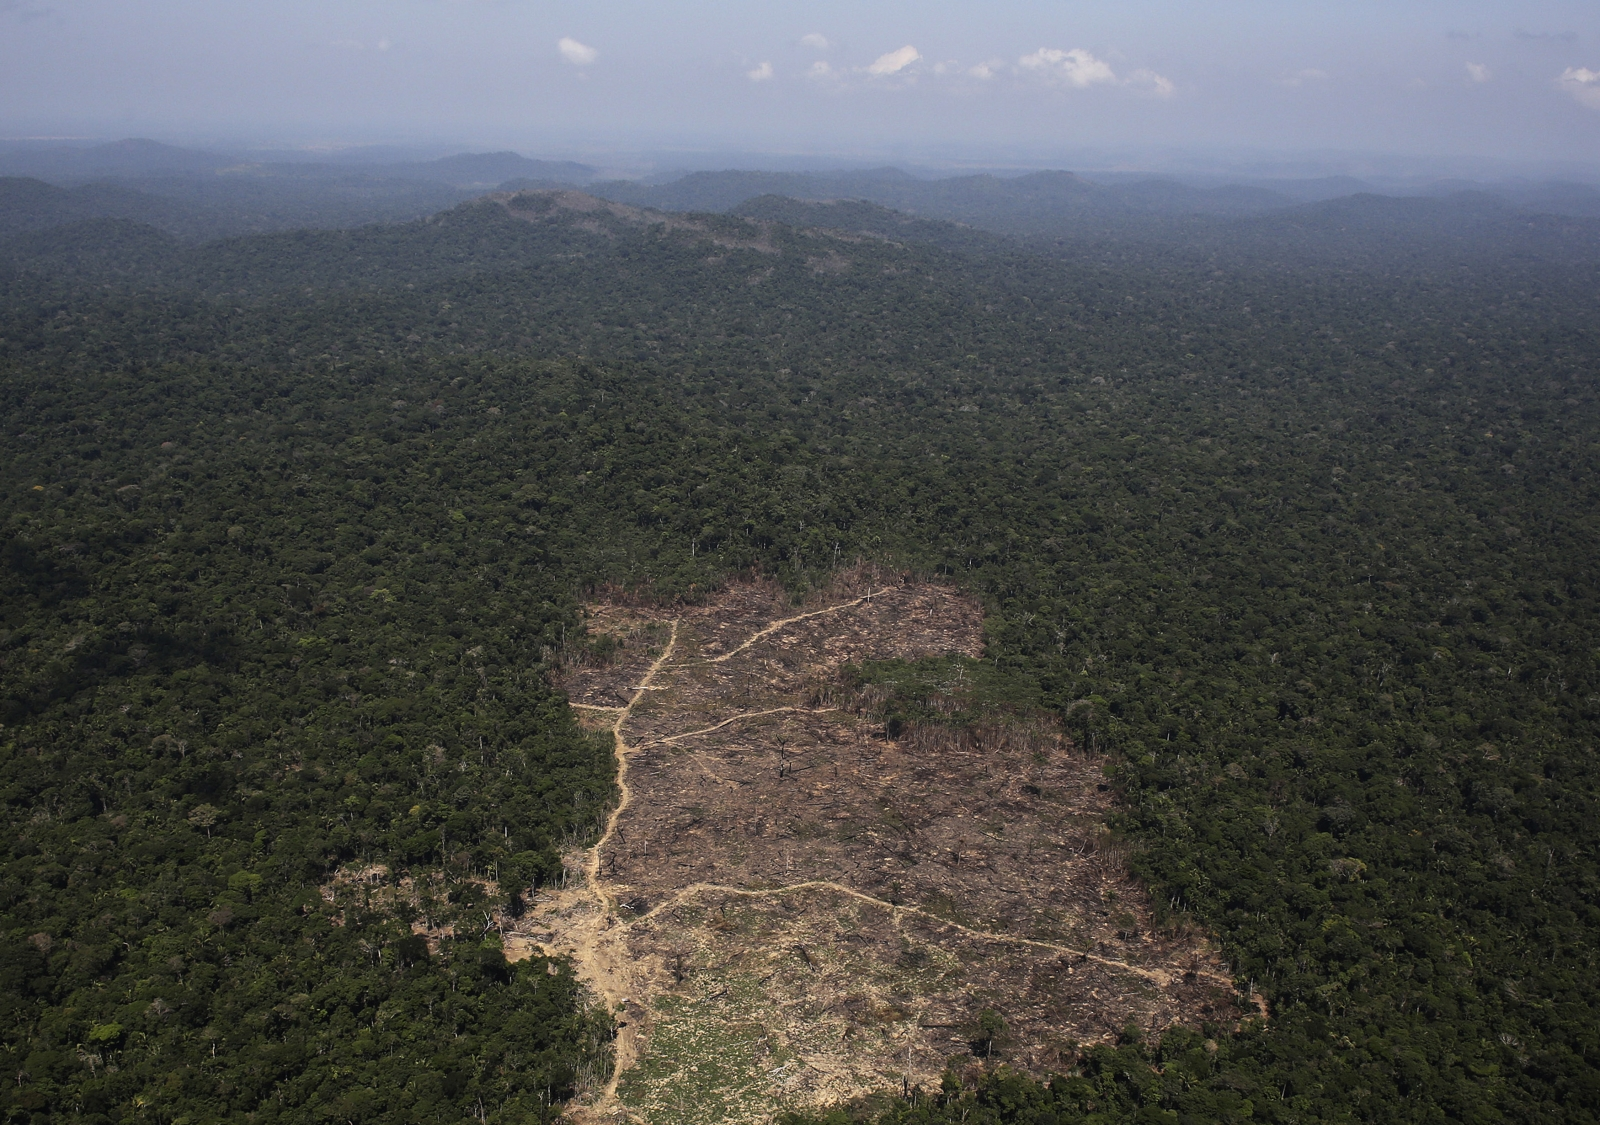 a report on the deforestation in brazil Last december, a government report said deforestation in the brazilian amazon had fallen to its lowest rate for 22 years however, the latest data shows a 27% jump in deforestation from august .